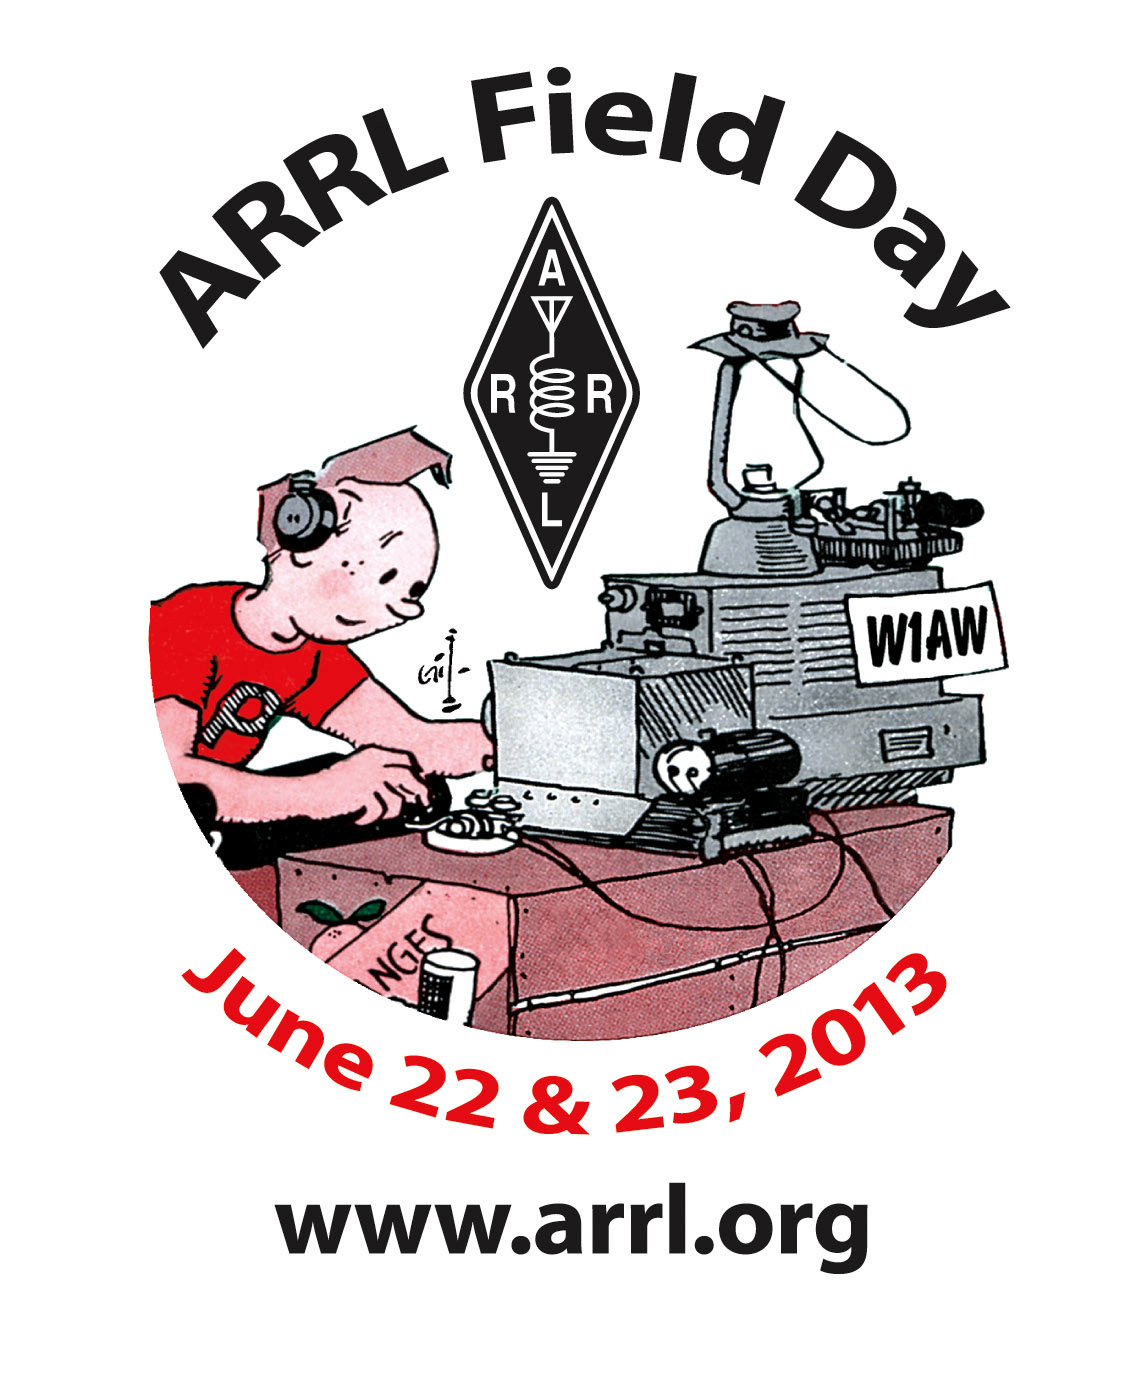 ARRL Field Day